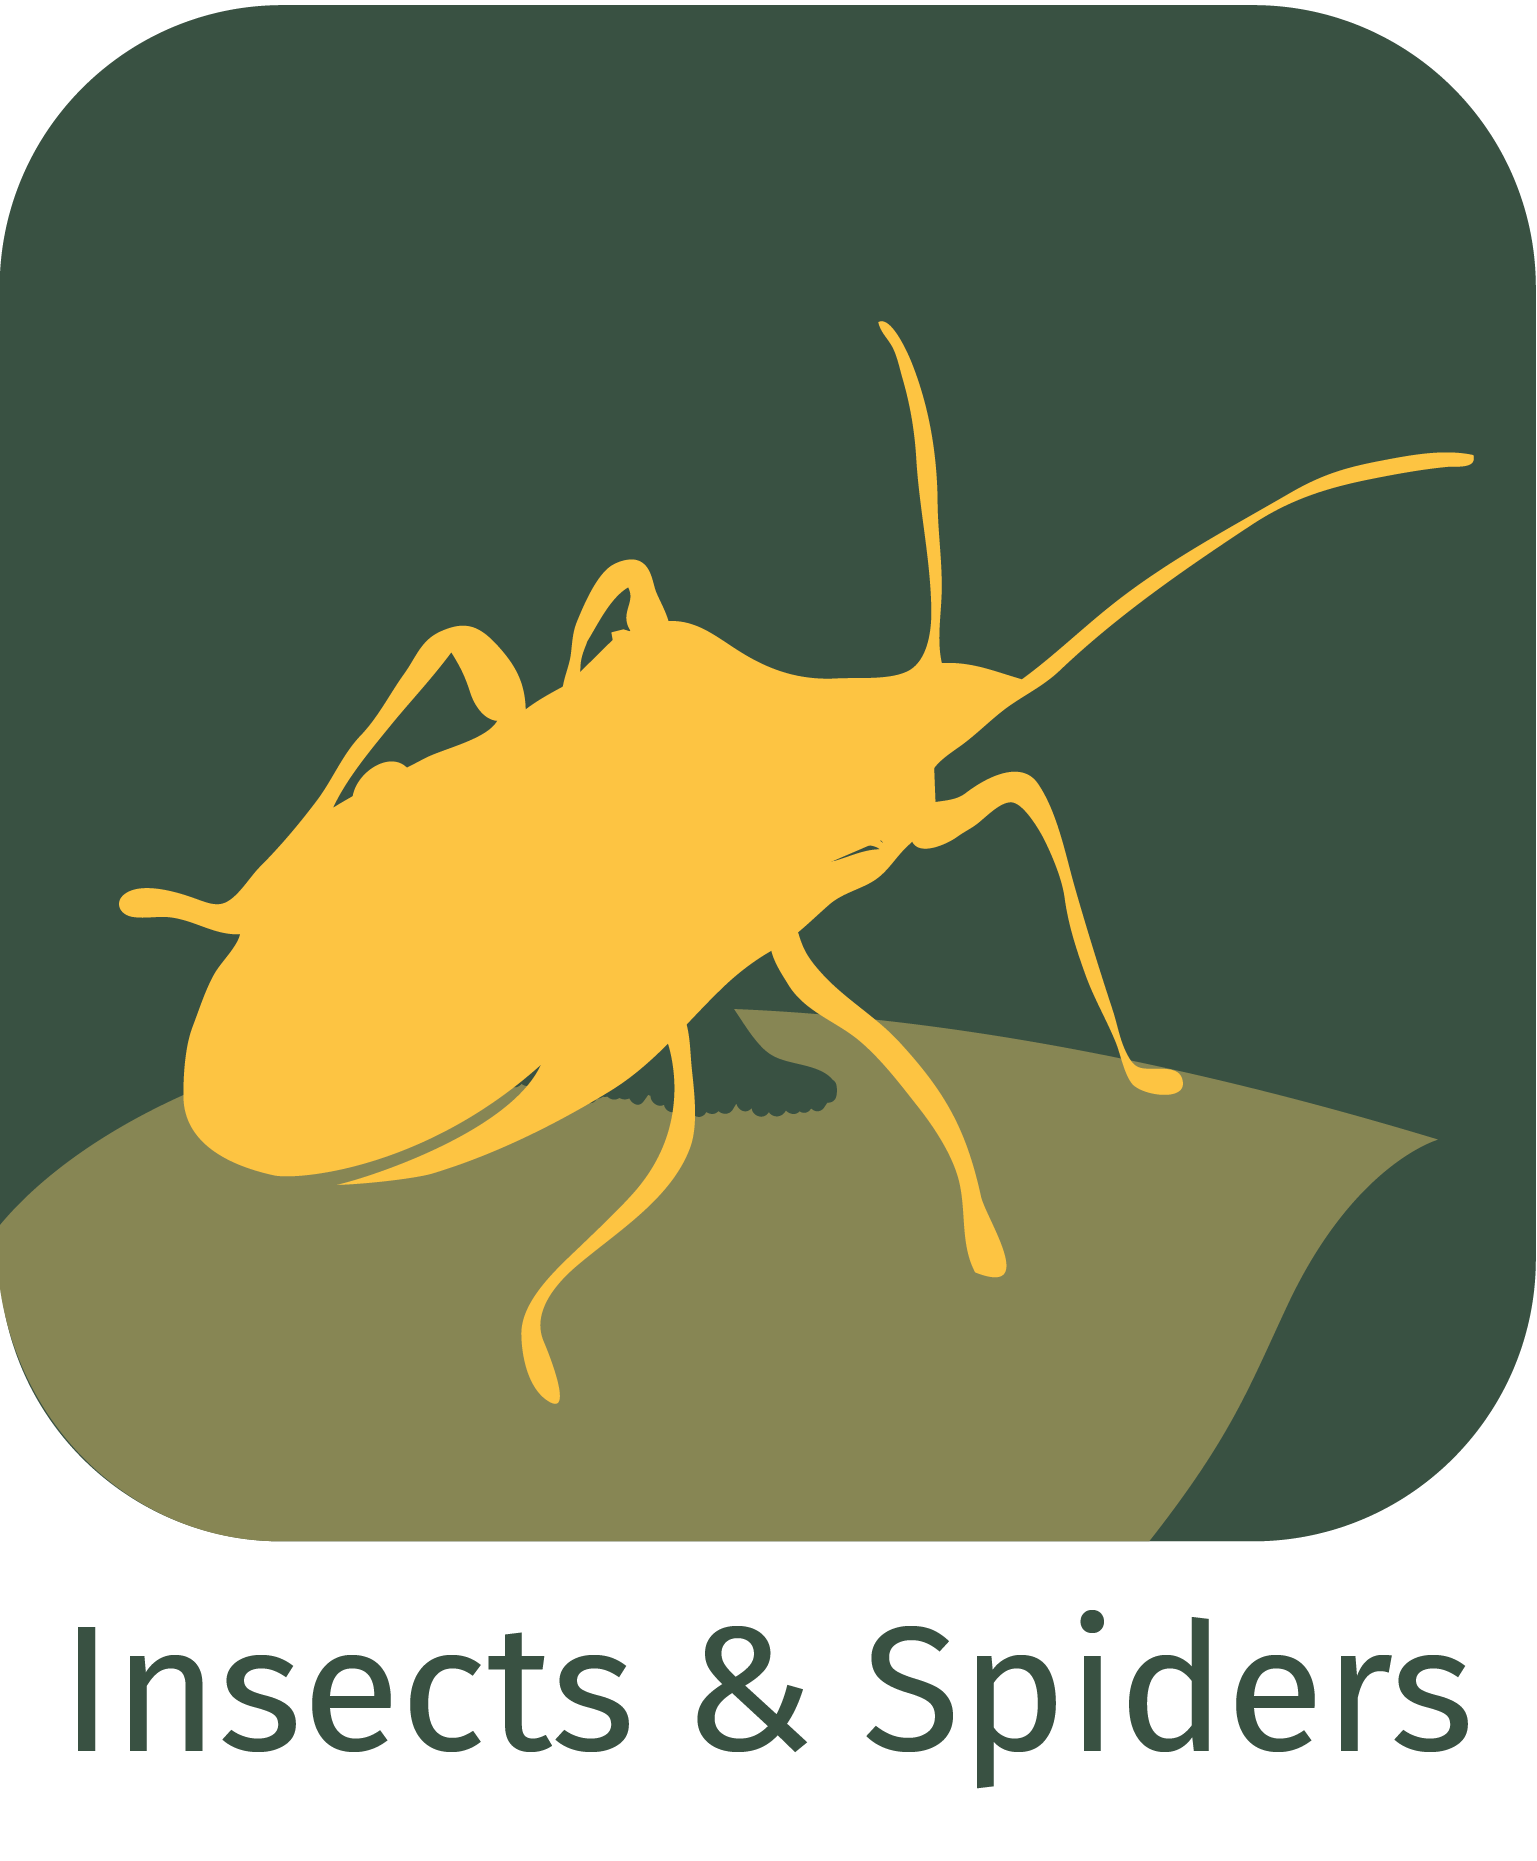 insects and spiders app icon